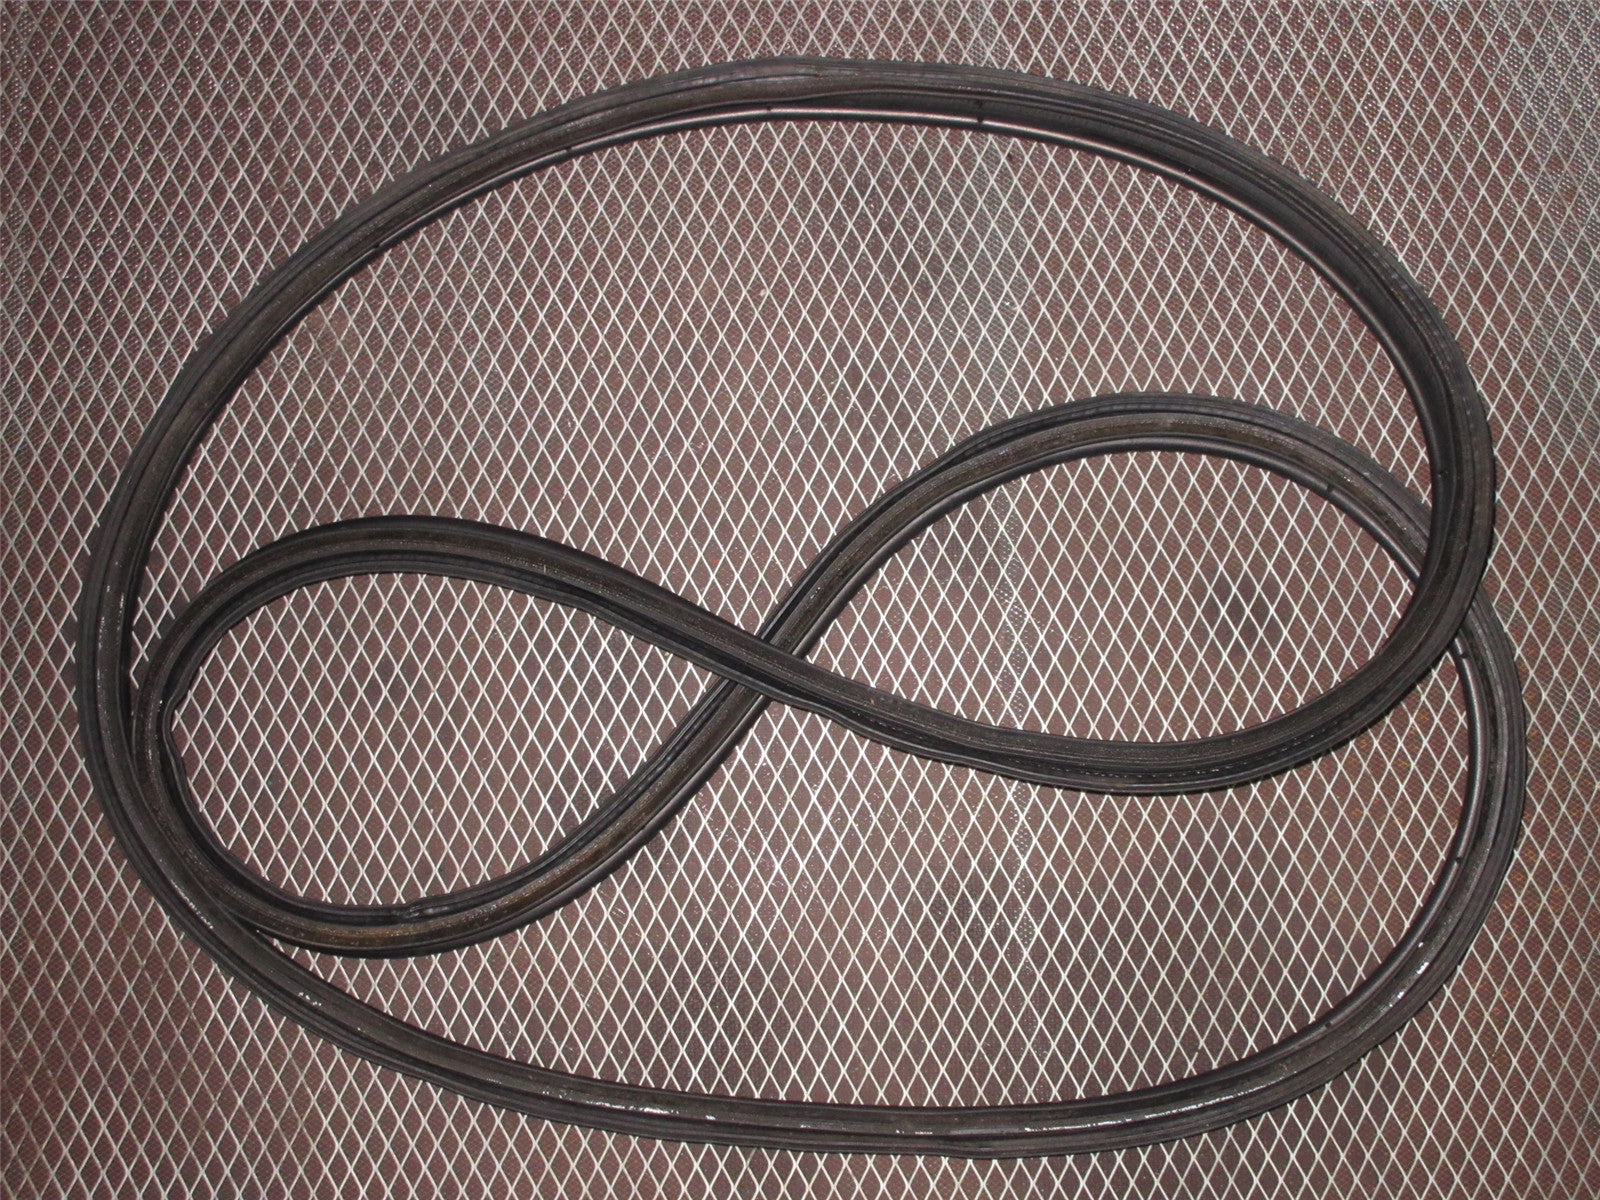 Trunk Seal Weatherstrip for /'78 to /'81 Toyota Celica Coupe